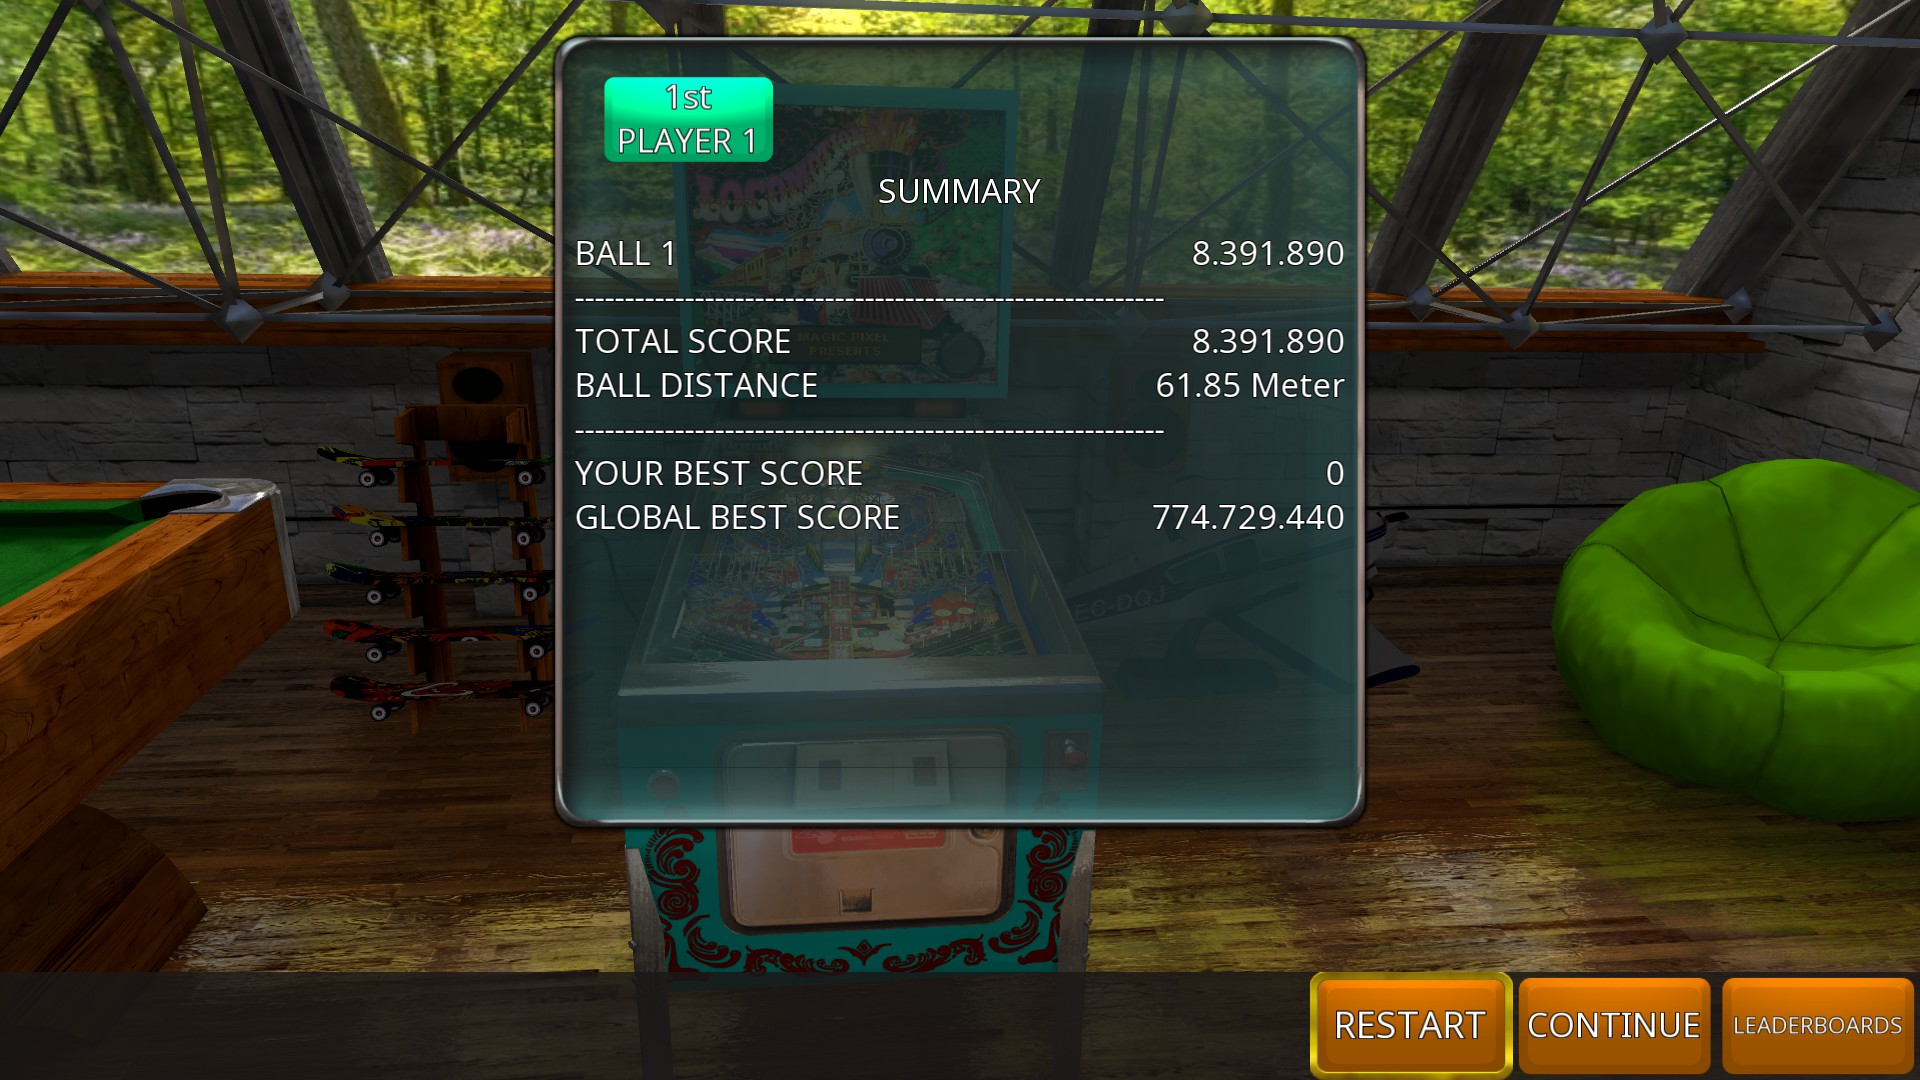 Zaccaria Pinball: Locomotion 2018 [3 balls] 8,391,890 points